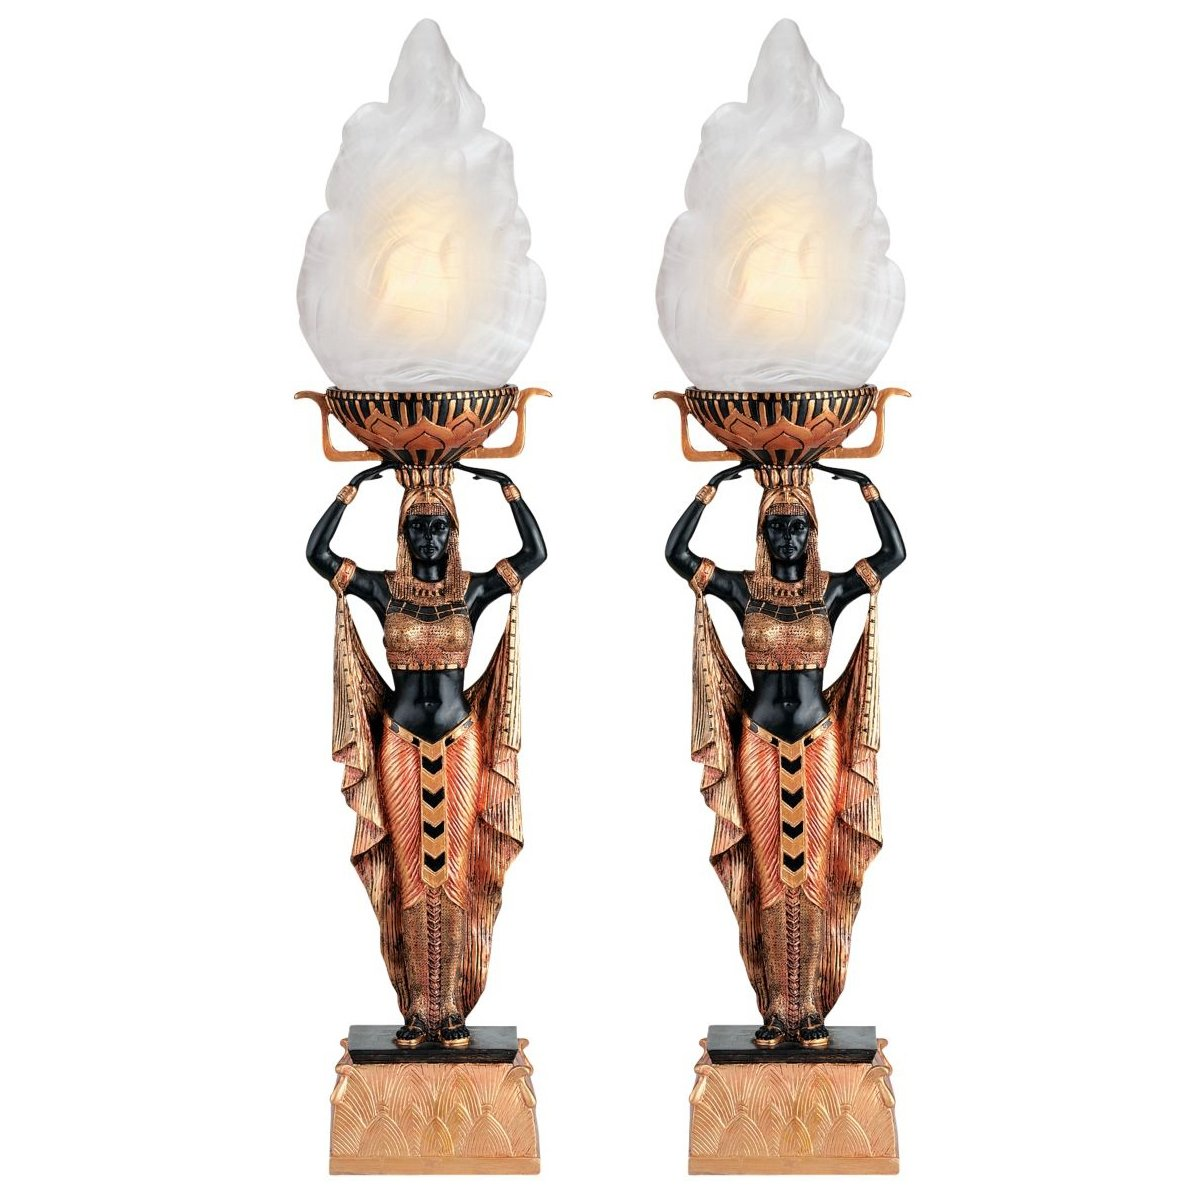 Incroyable Amazon.com: Design Toscano Egyptian Torch Offering Table Lamp: Kitchen U0026  Dining